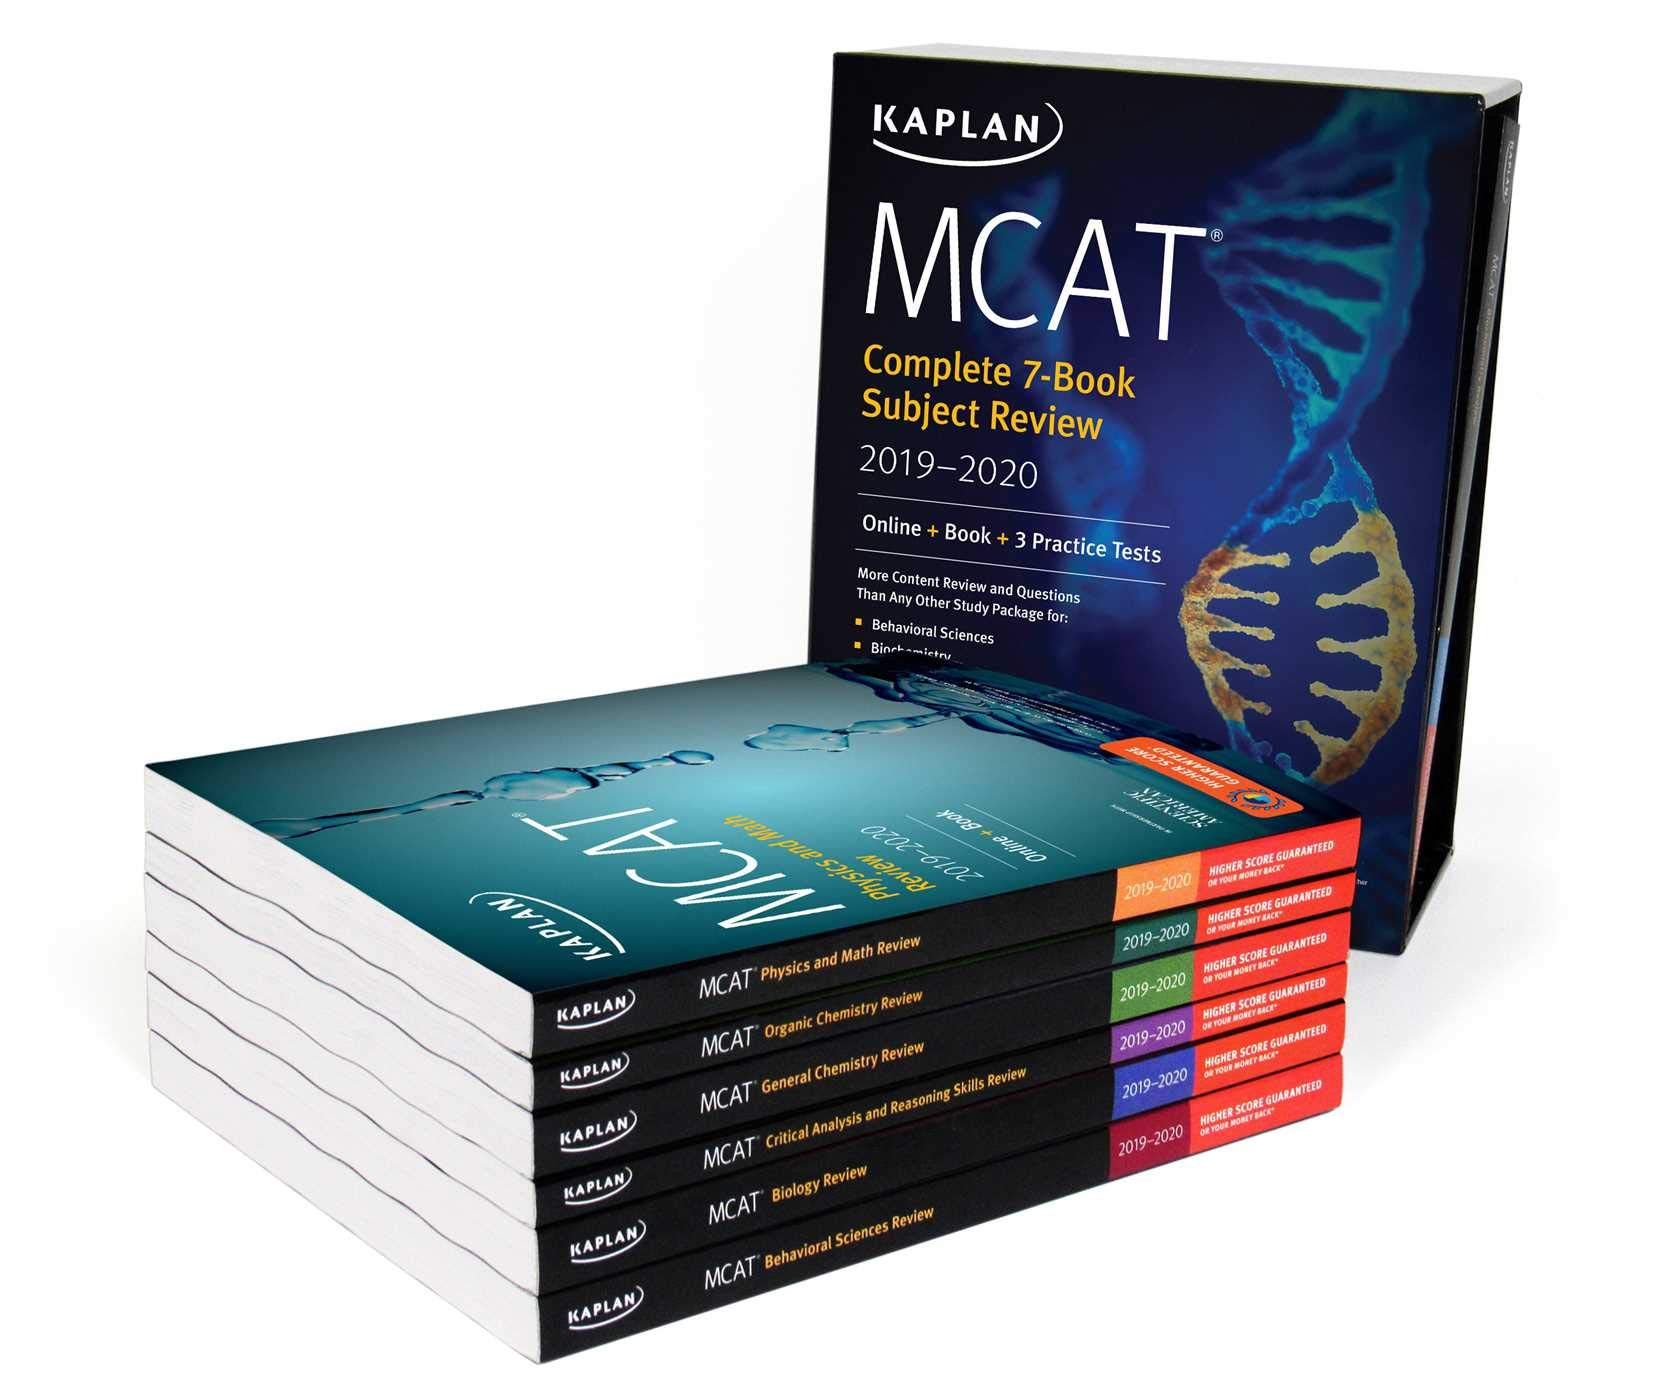 MCAT Complete 7-Book Subject Review 2019-2020: Online + Book